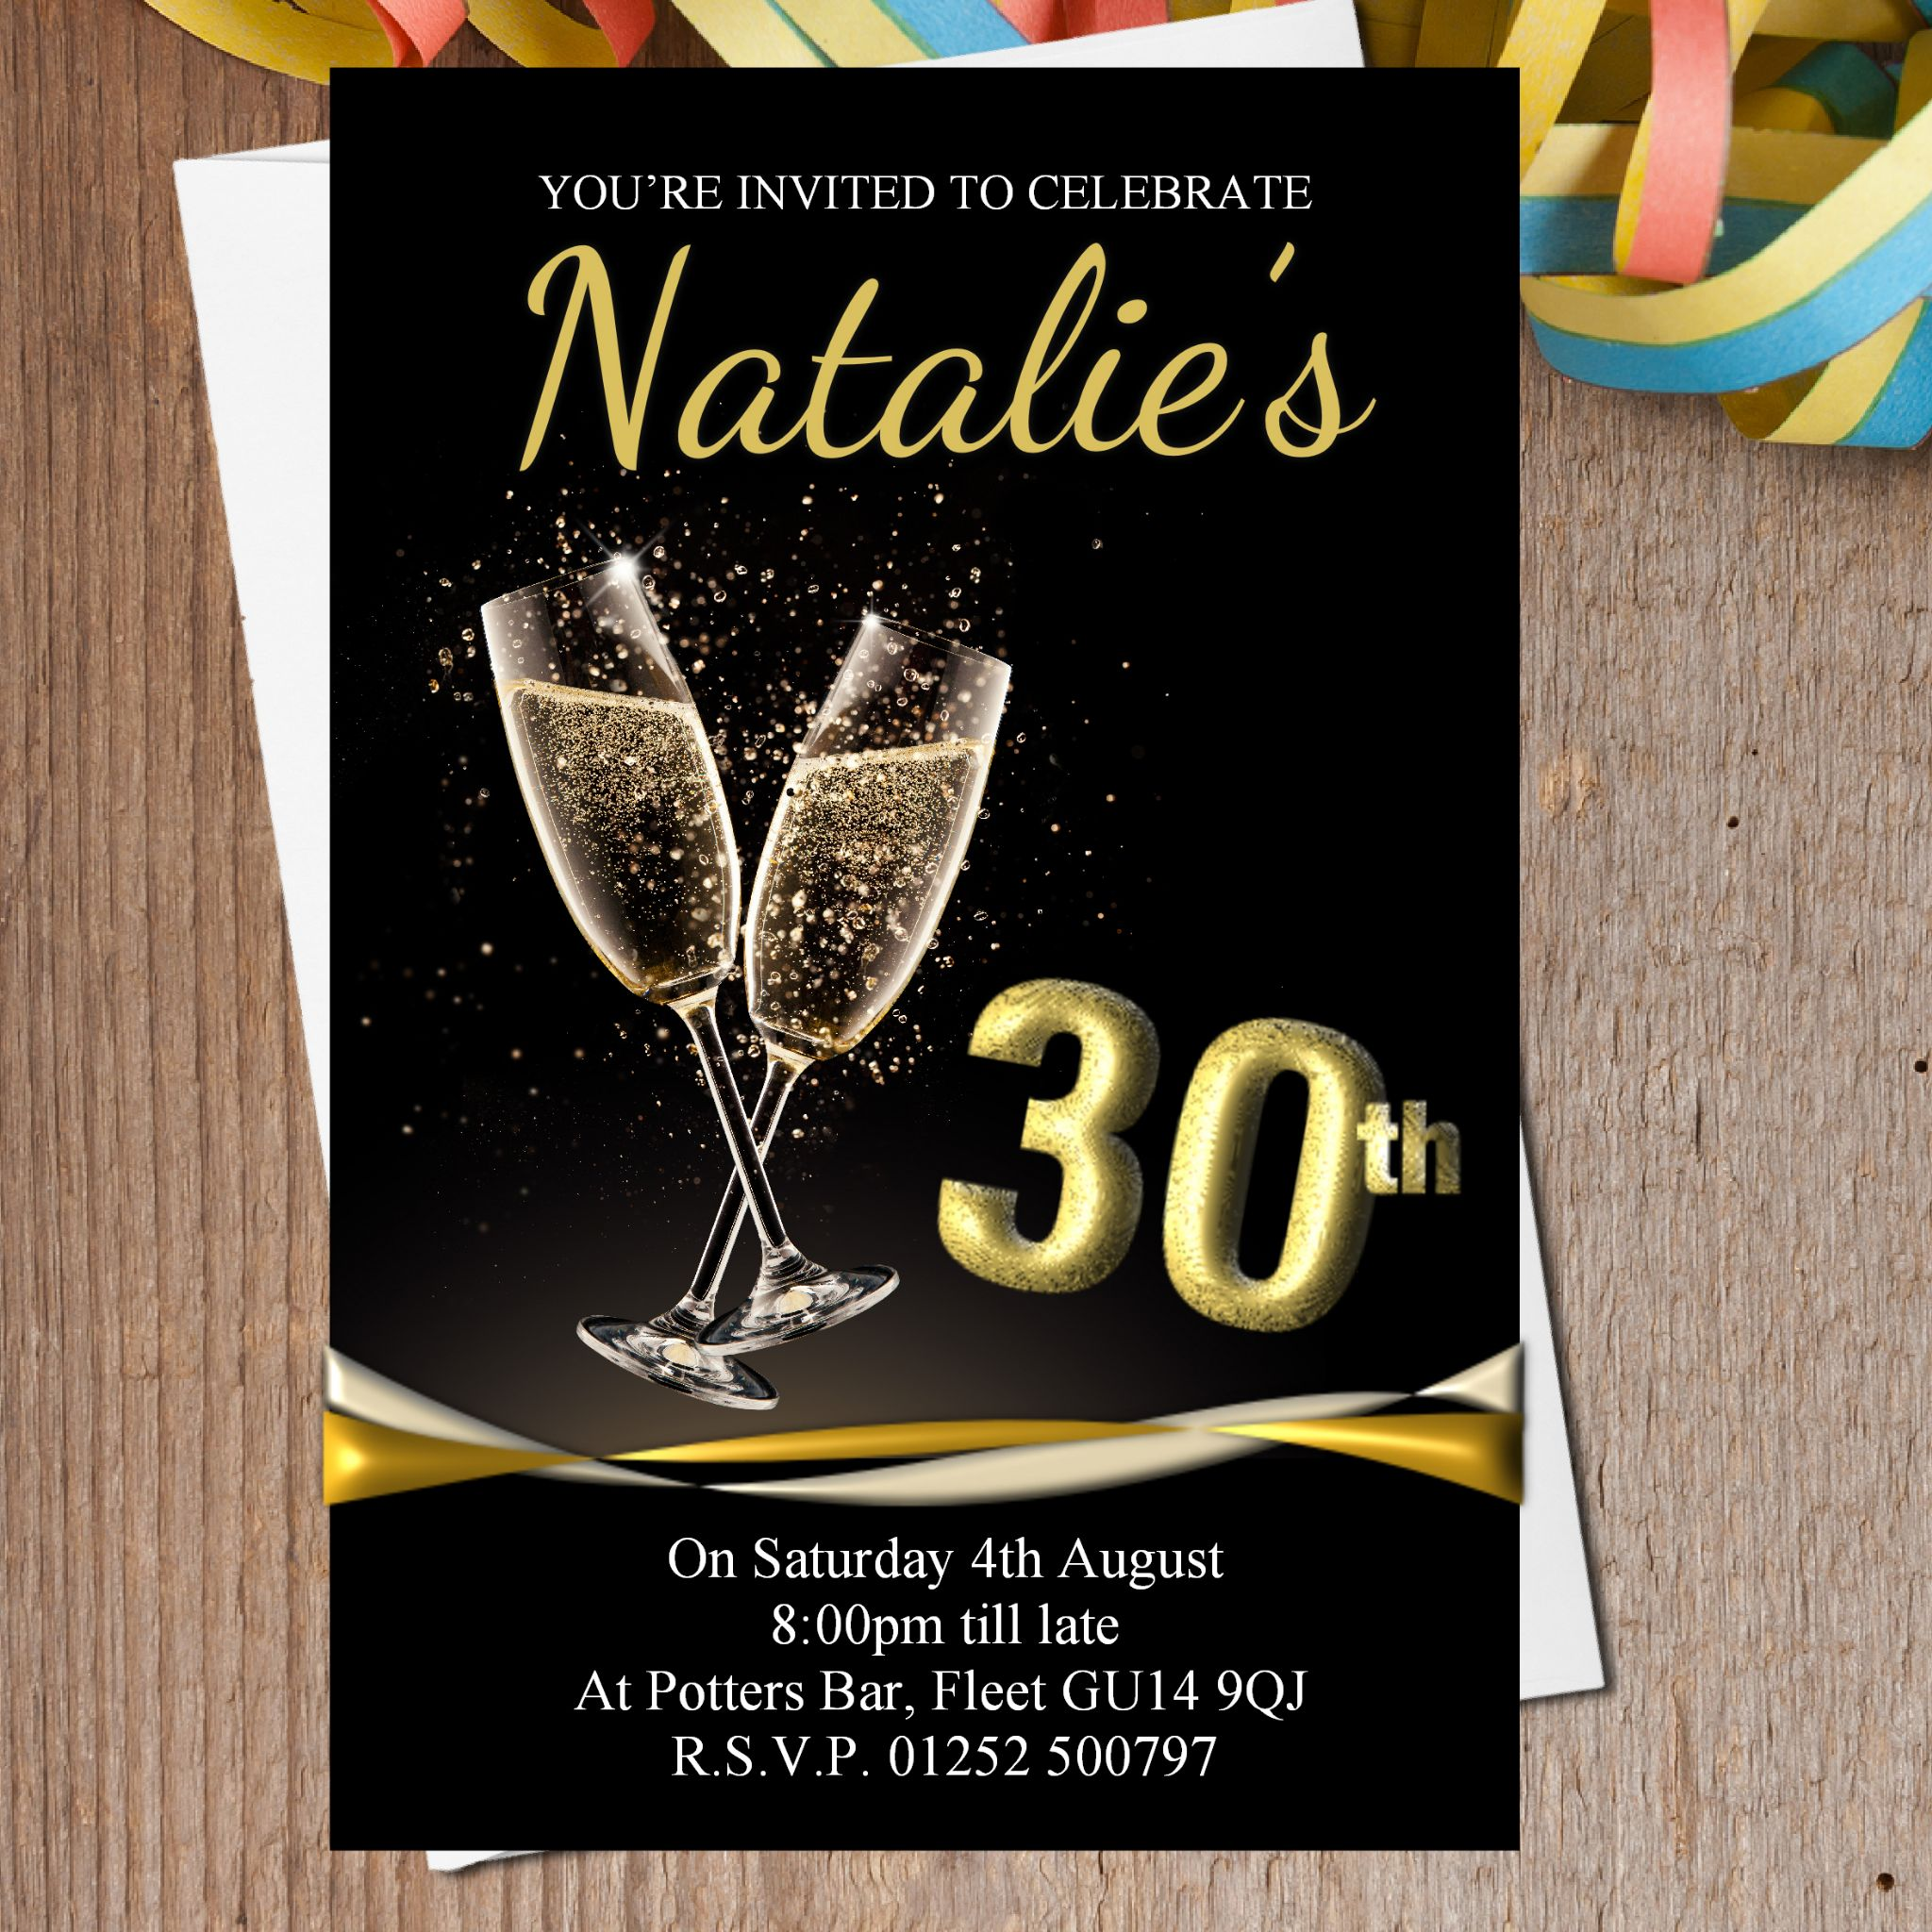 10 personalised black gold champagne birthday party invitations